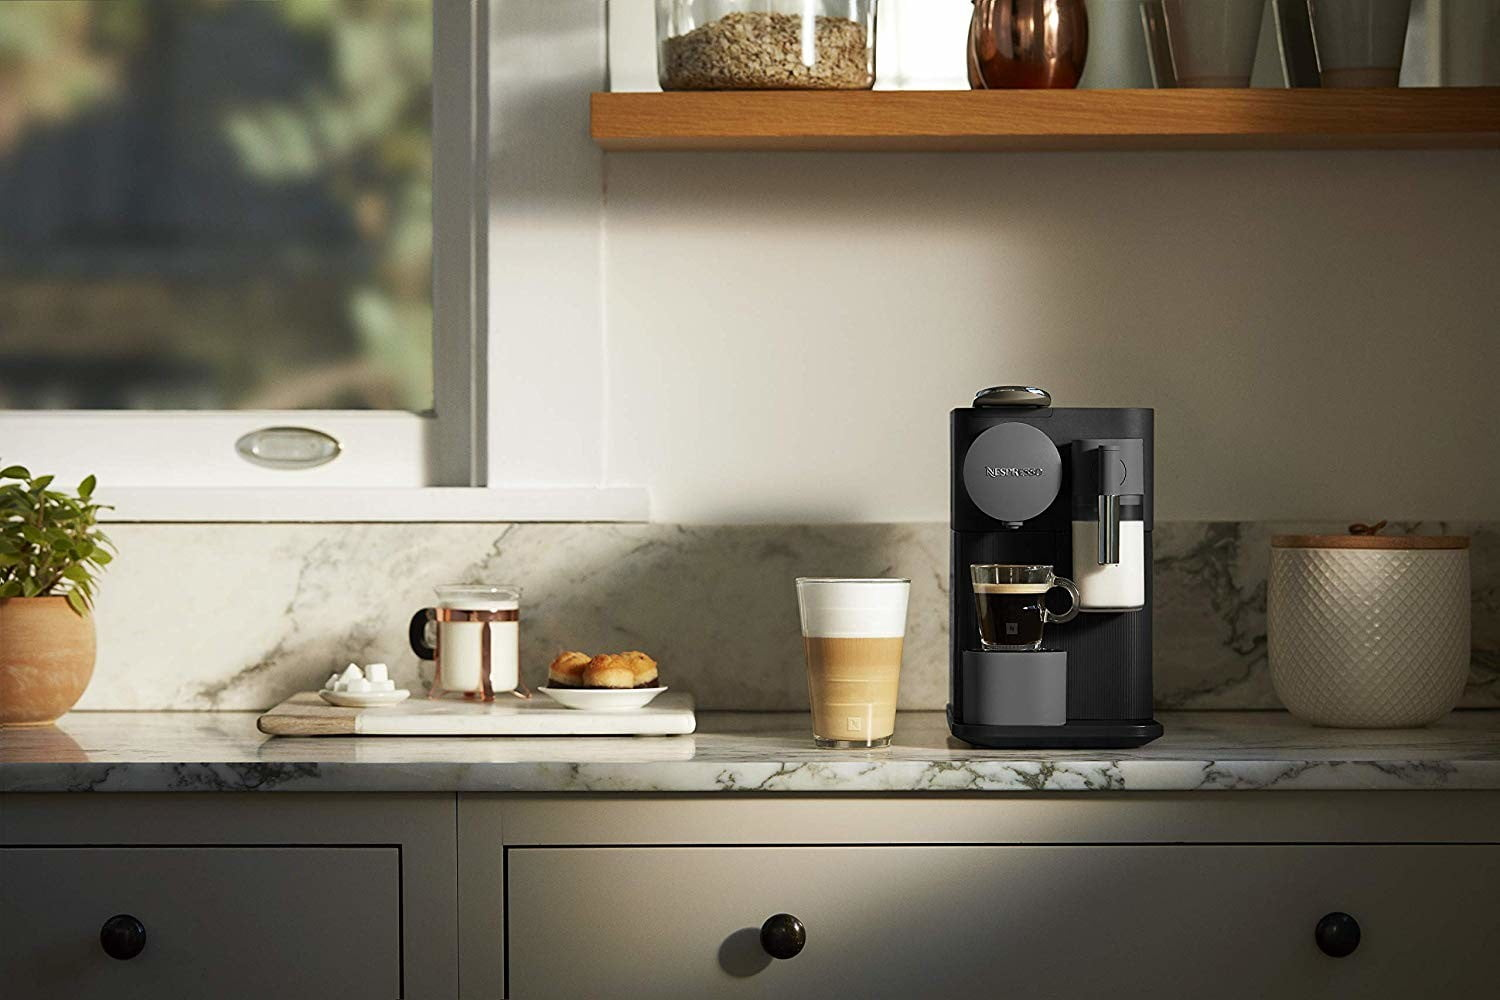 These De'Longhi Nespresso machines are discounted up to $163 on Amazon